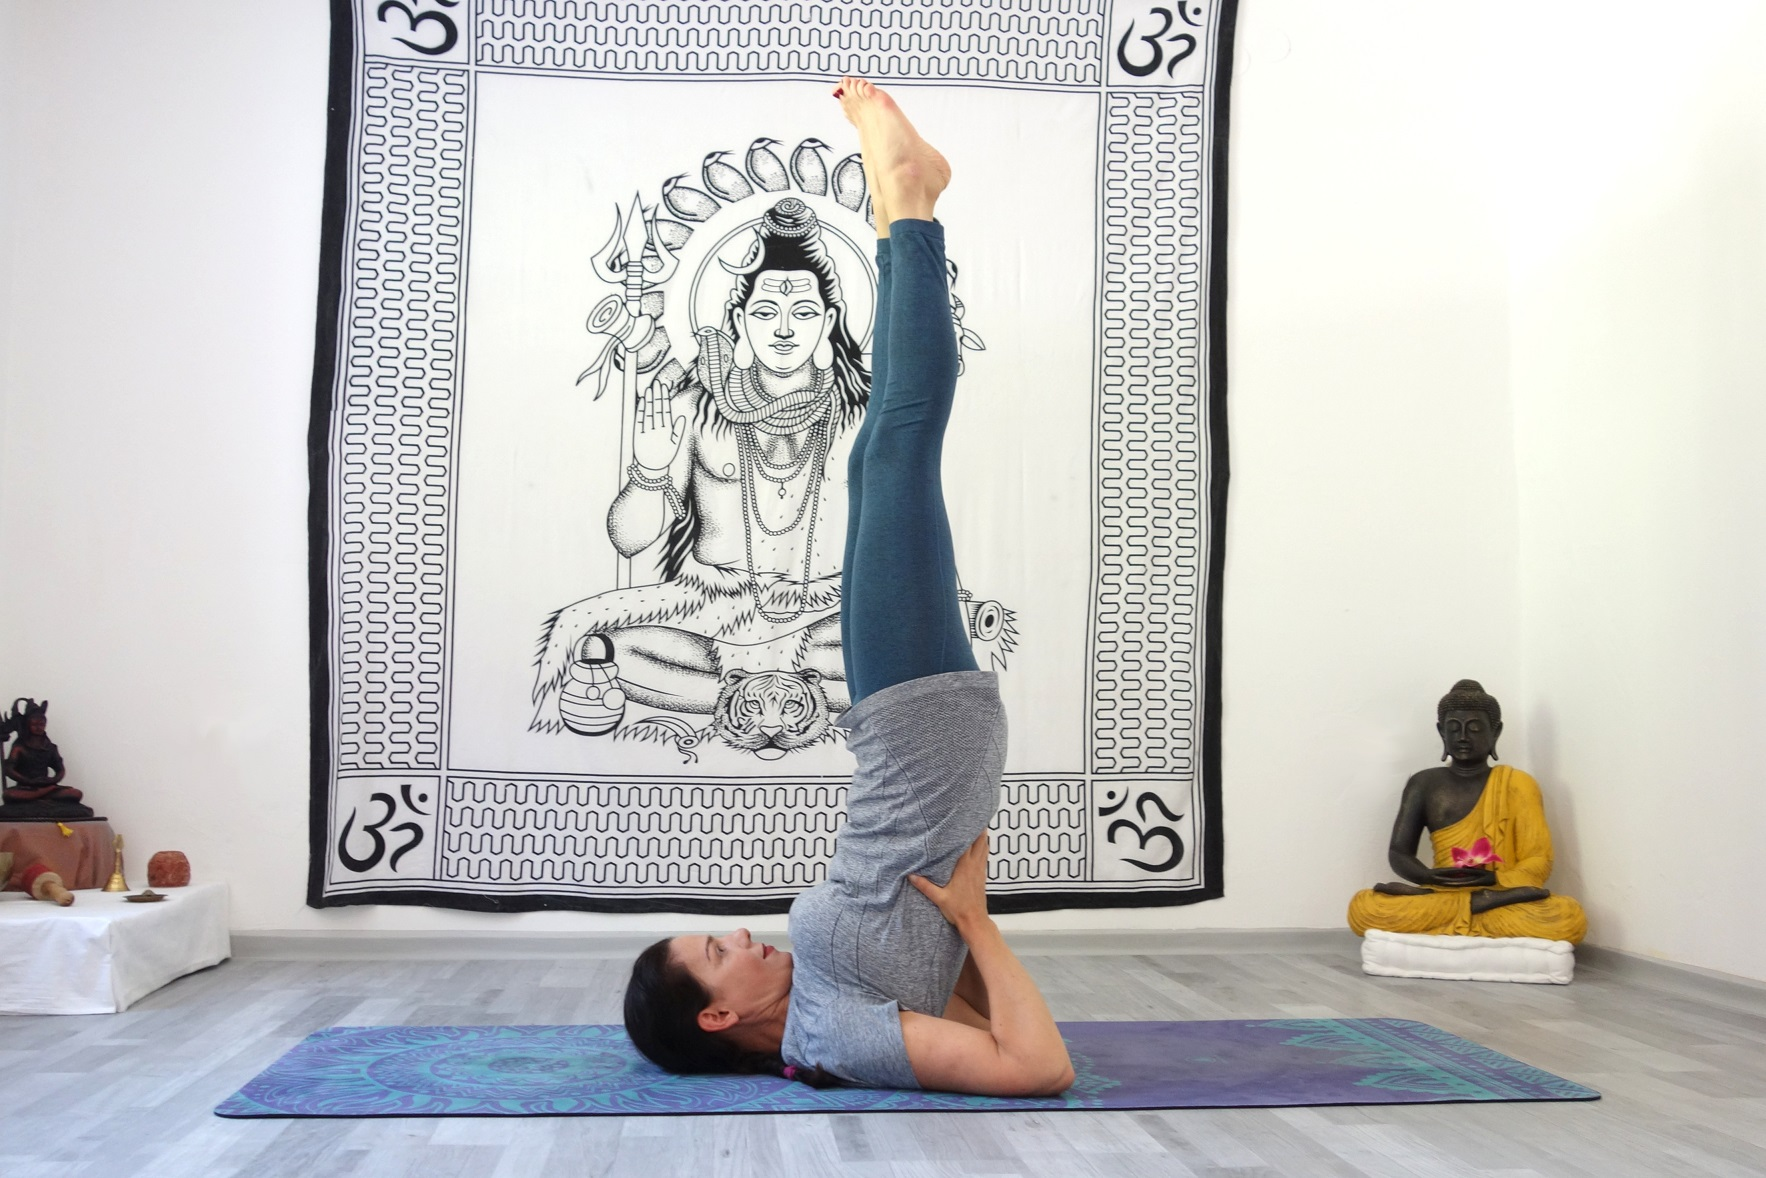 sarvangasana4 - Asana of the Month: Sarvangasana